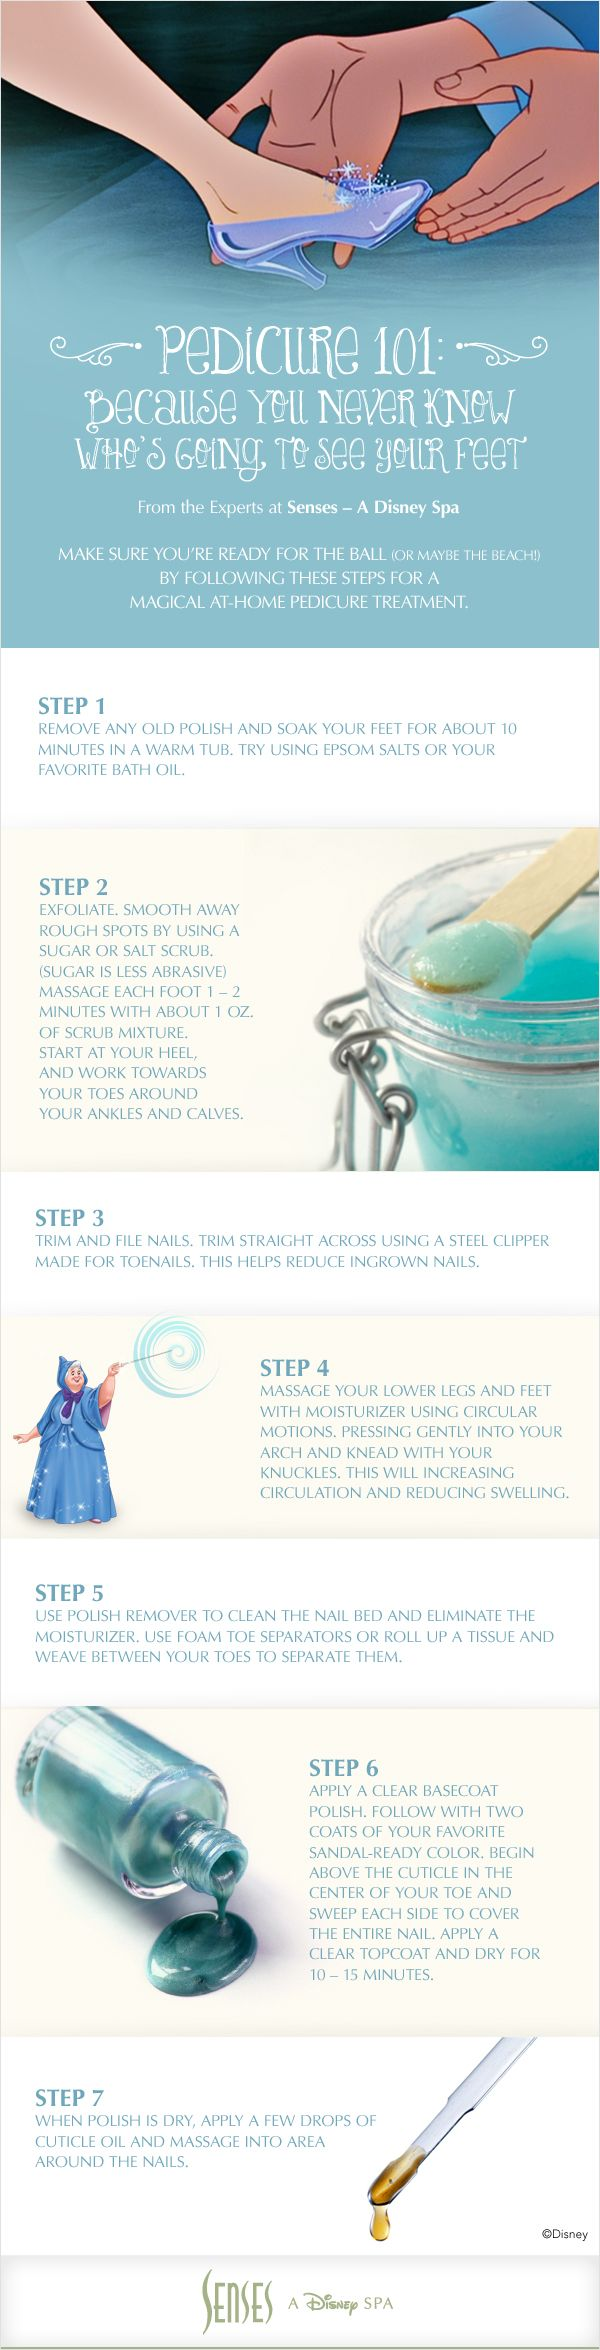 Pedicure 101: Because you never know who's going to see your feet! (Especially if you tend to wear glass slippers.) Follow these Disney pedicure DIY steps for a magical at-home treatment, fit for a princess. Brought to you by Senses – A Disney Spa. #DIY #Pedicure #Cinderella #DisneyWorld #DisneyPedicure #DisneyStyle